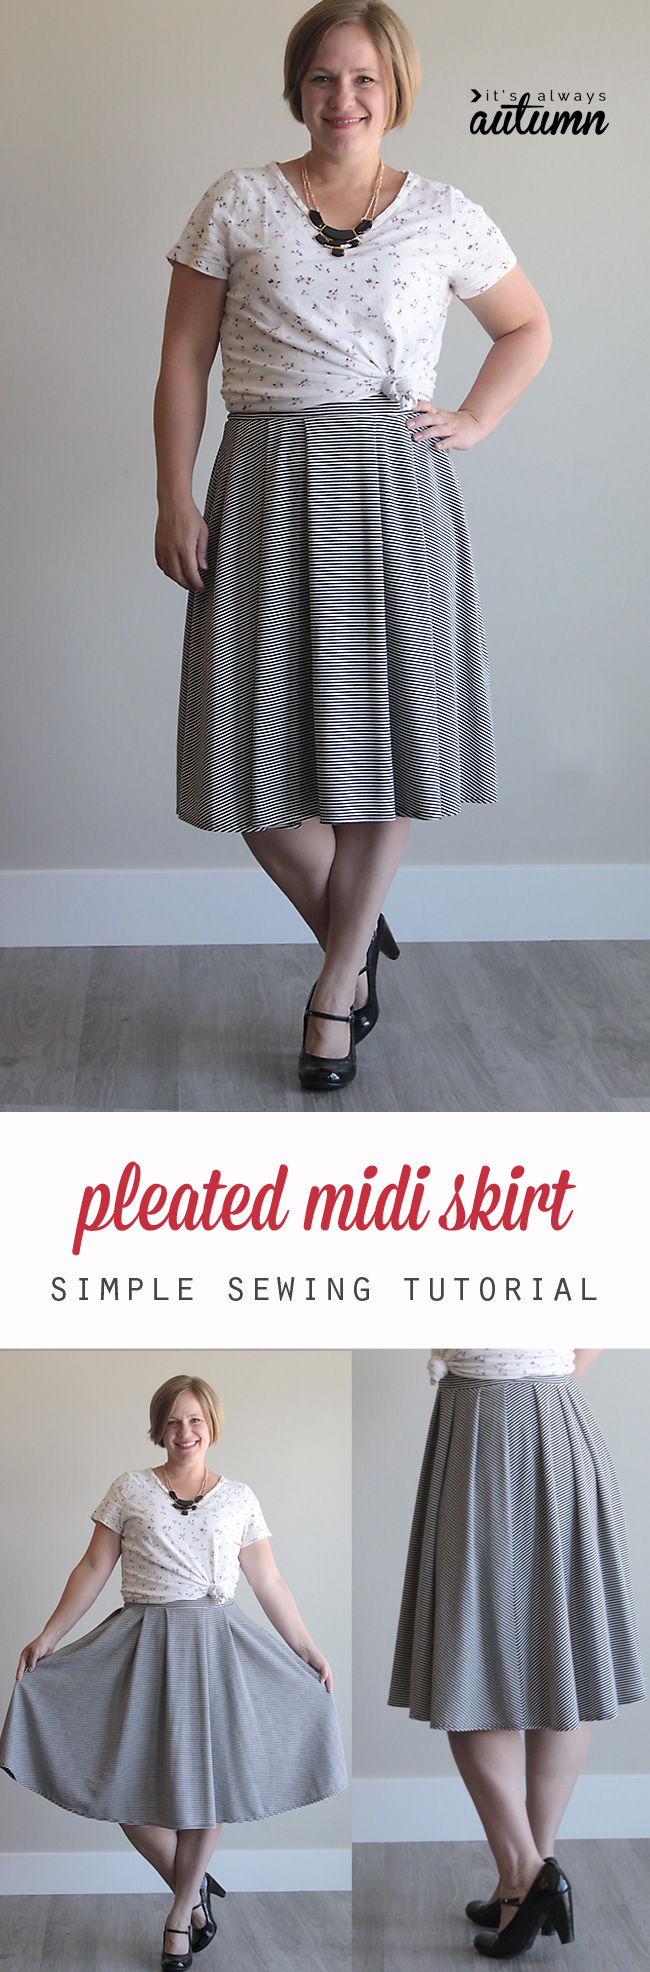 How to make a pleated midi skirt pattern in your size + pleated midi skirt sewing tutorial. This is made with knit fabric and an elastic waistband so it's super quick to make!